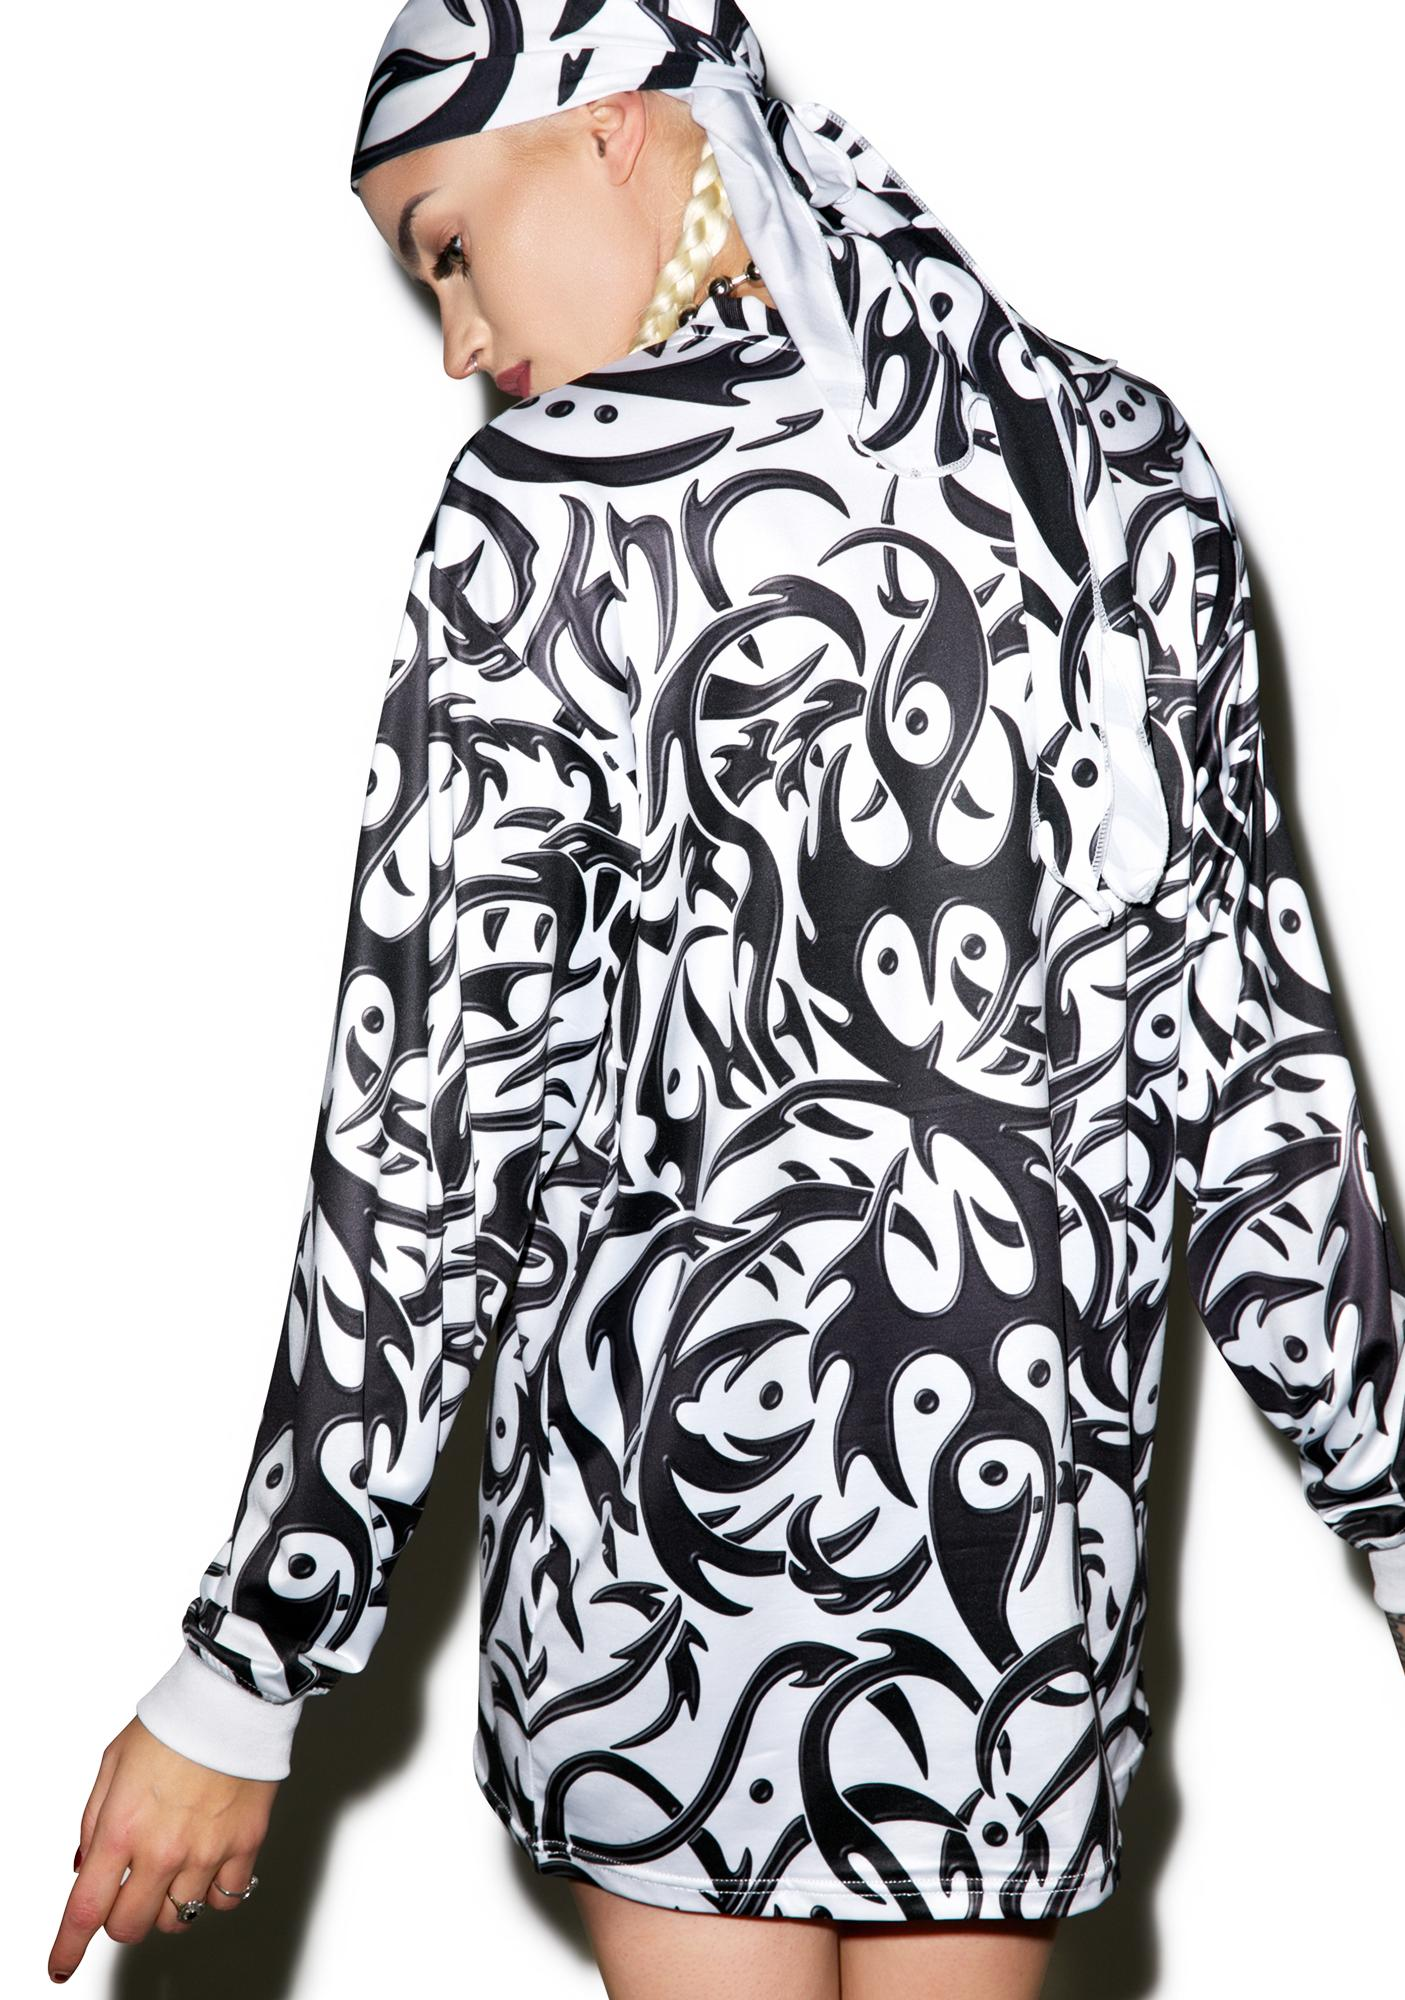 SOWET Tribal Long Sleeve Shirt